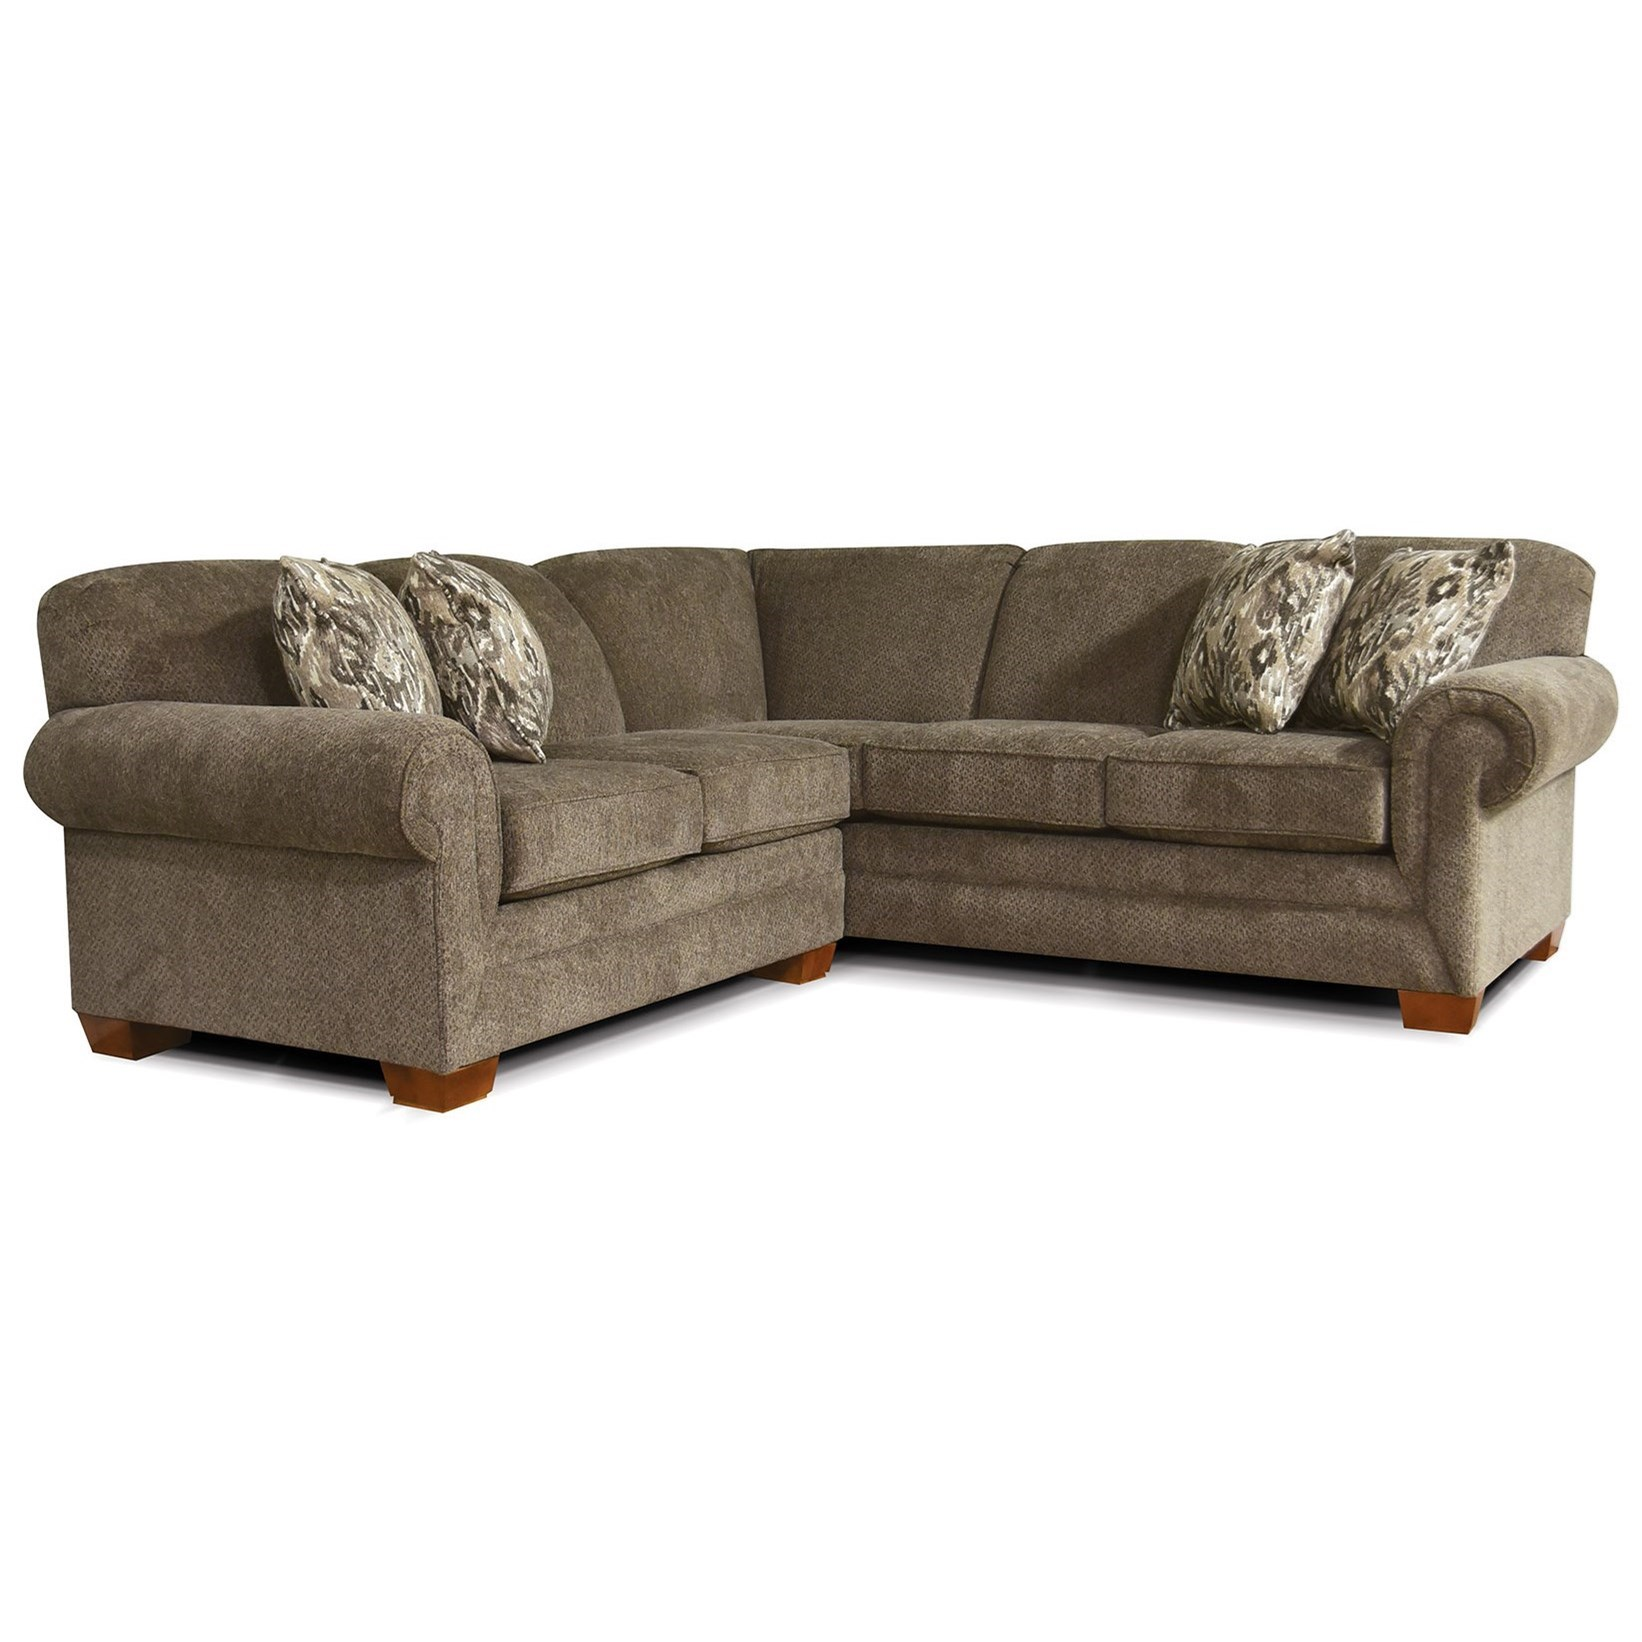 V140 Small Sectional Sofa for 3-4 People by Alexvale at Northeast Factory Direct